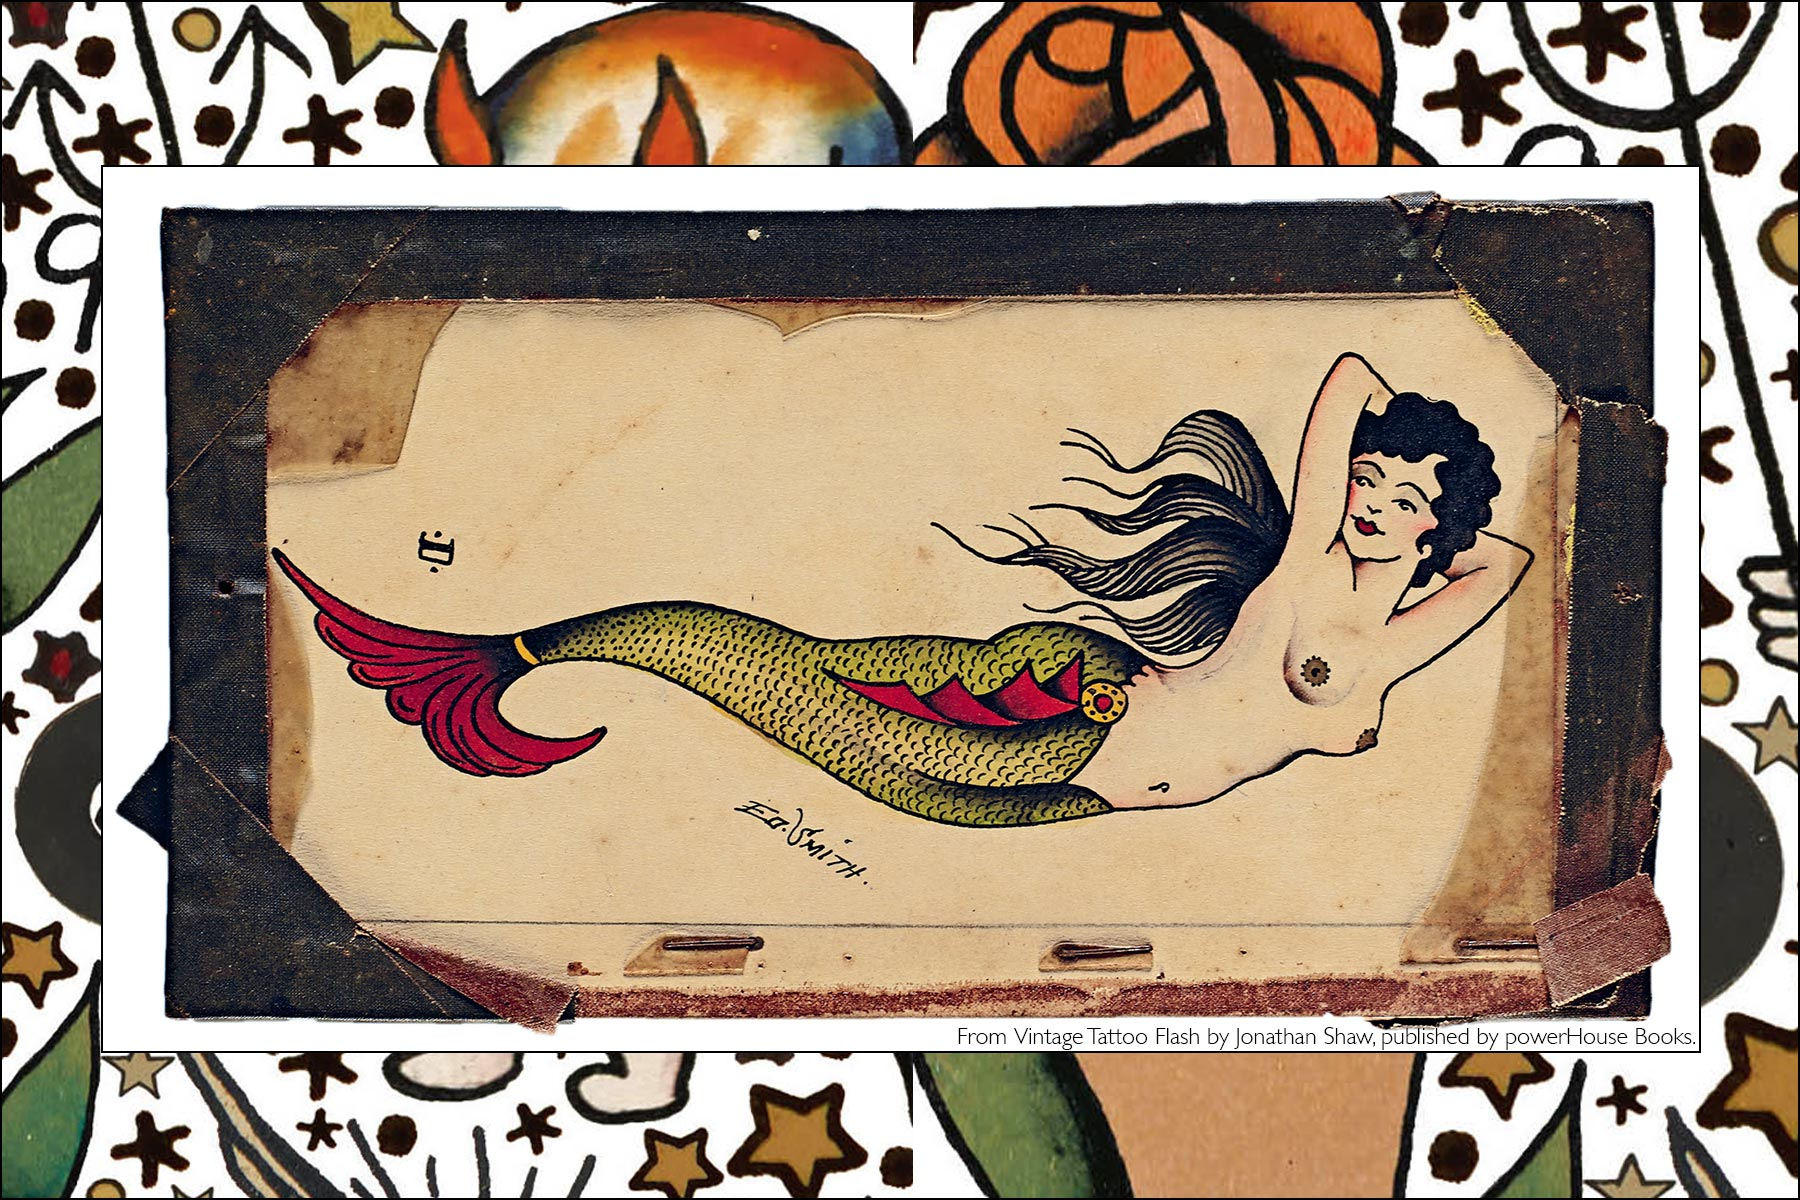 Old school tattoo flash of a mermaid, from the newly released publication, Vintage Tattoo Flash by Jonathan Shaw, from Powerhouse Books. Ponyboy magazine NY.